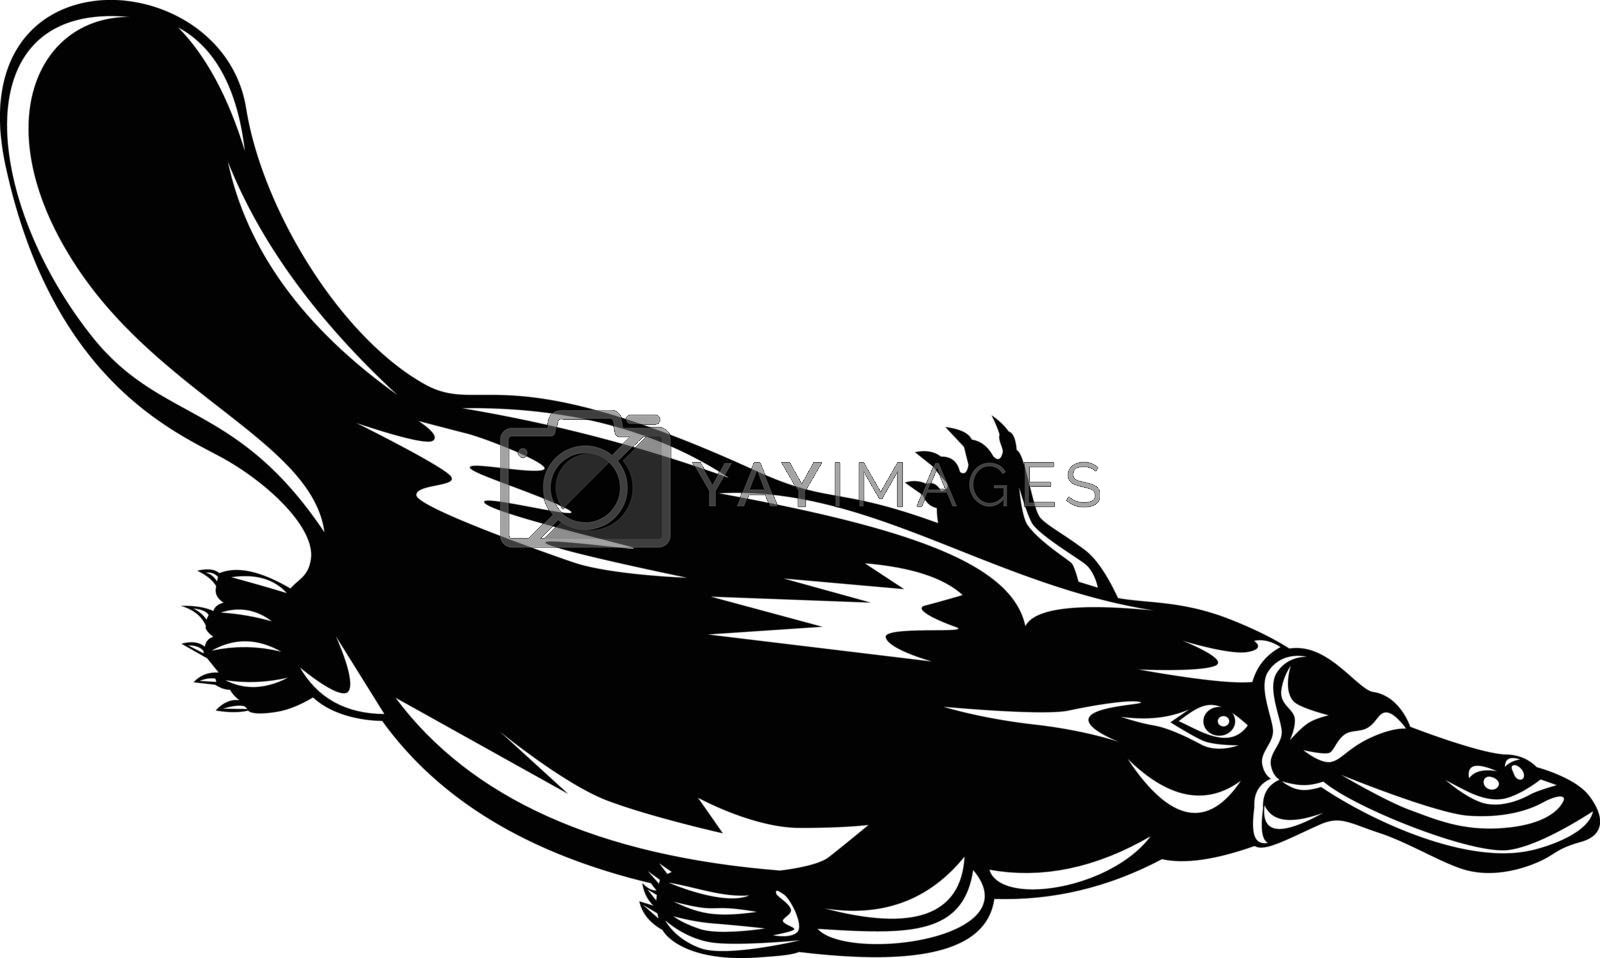 Retro woodcut style illustration of a duck-billed platypus Ornithorhynchus anatinus, a semiaquatic egg-laying mammal endemic to Australia swimming down isolated background done in black and white.